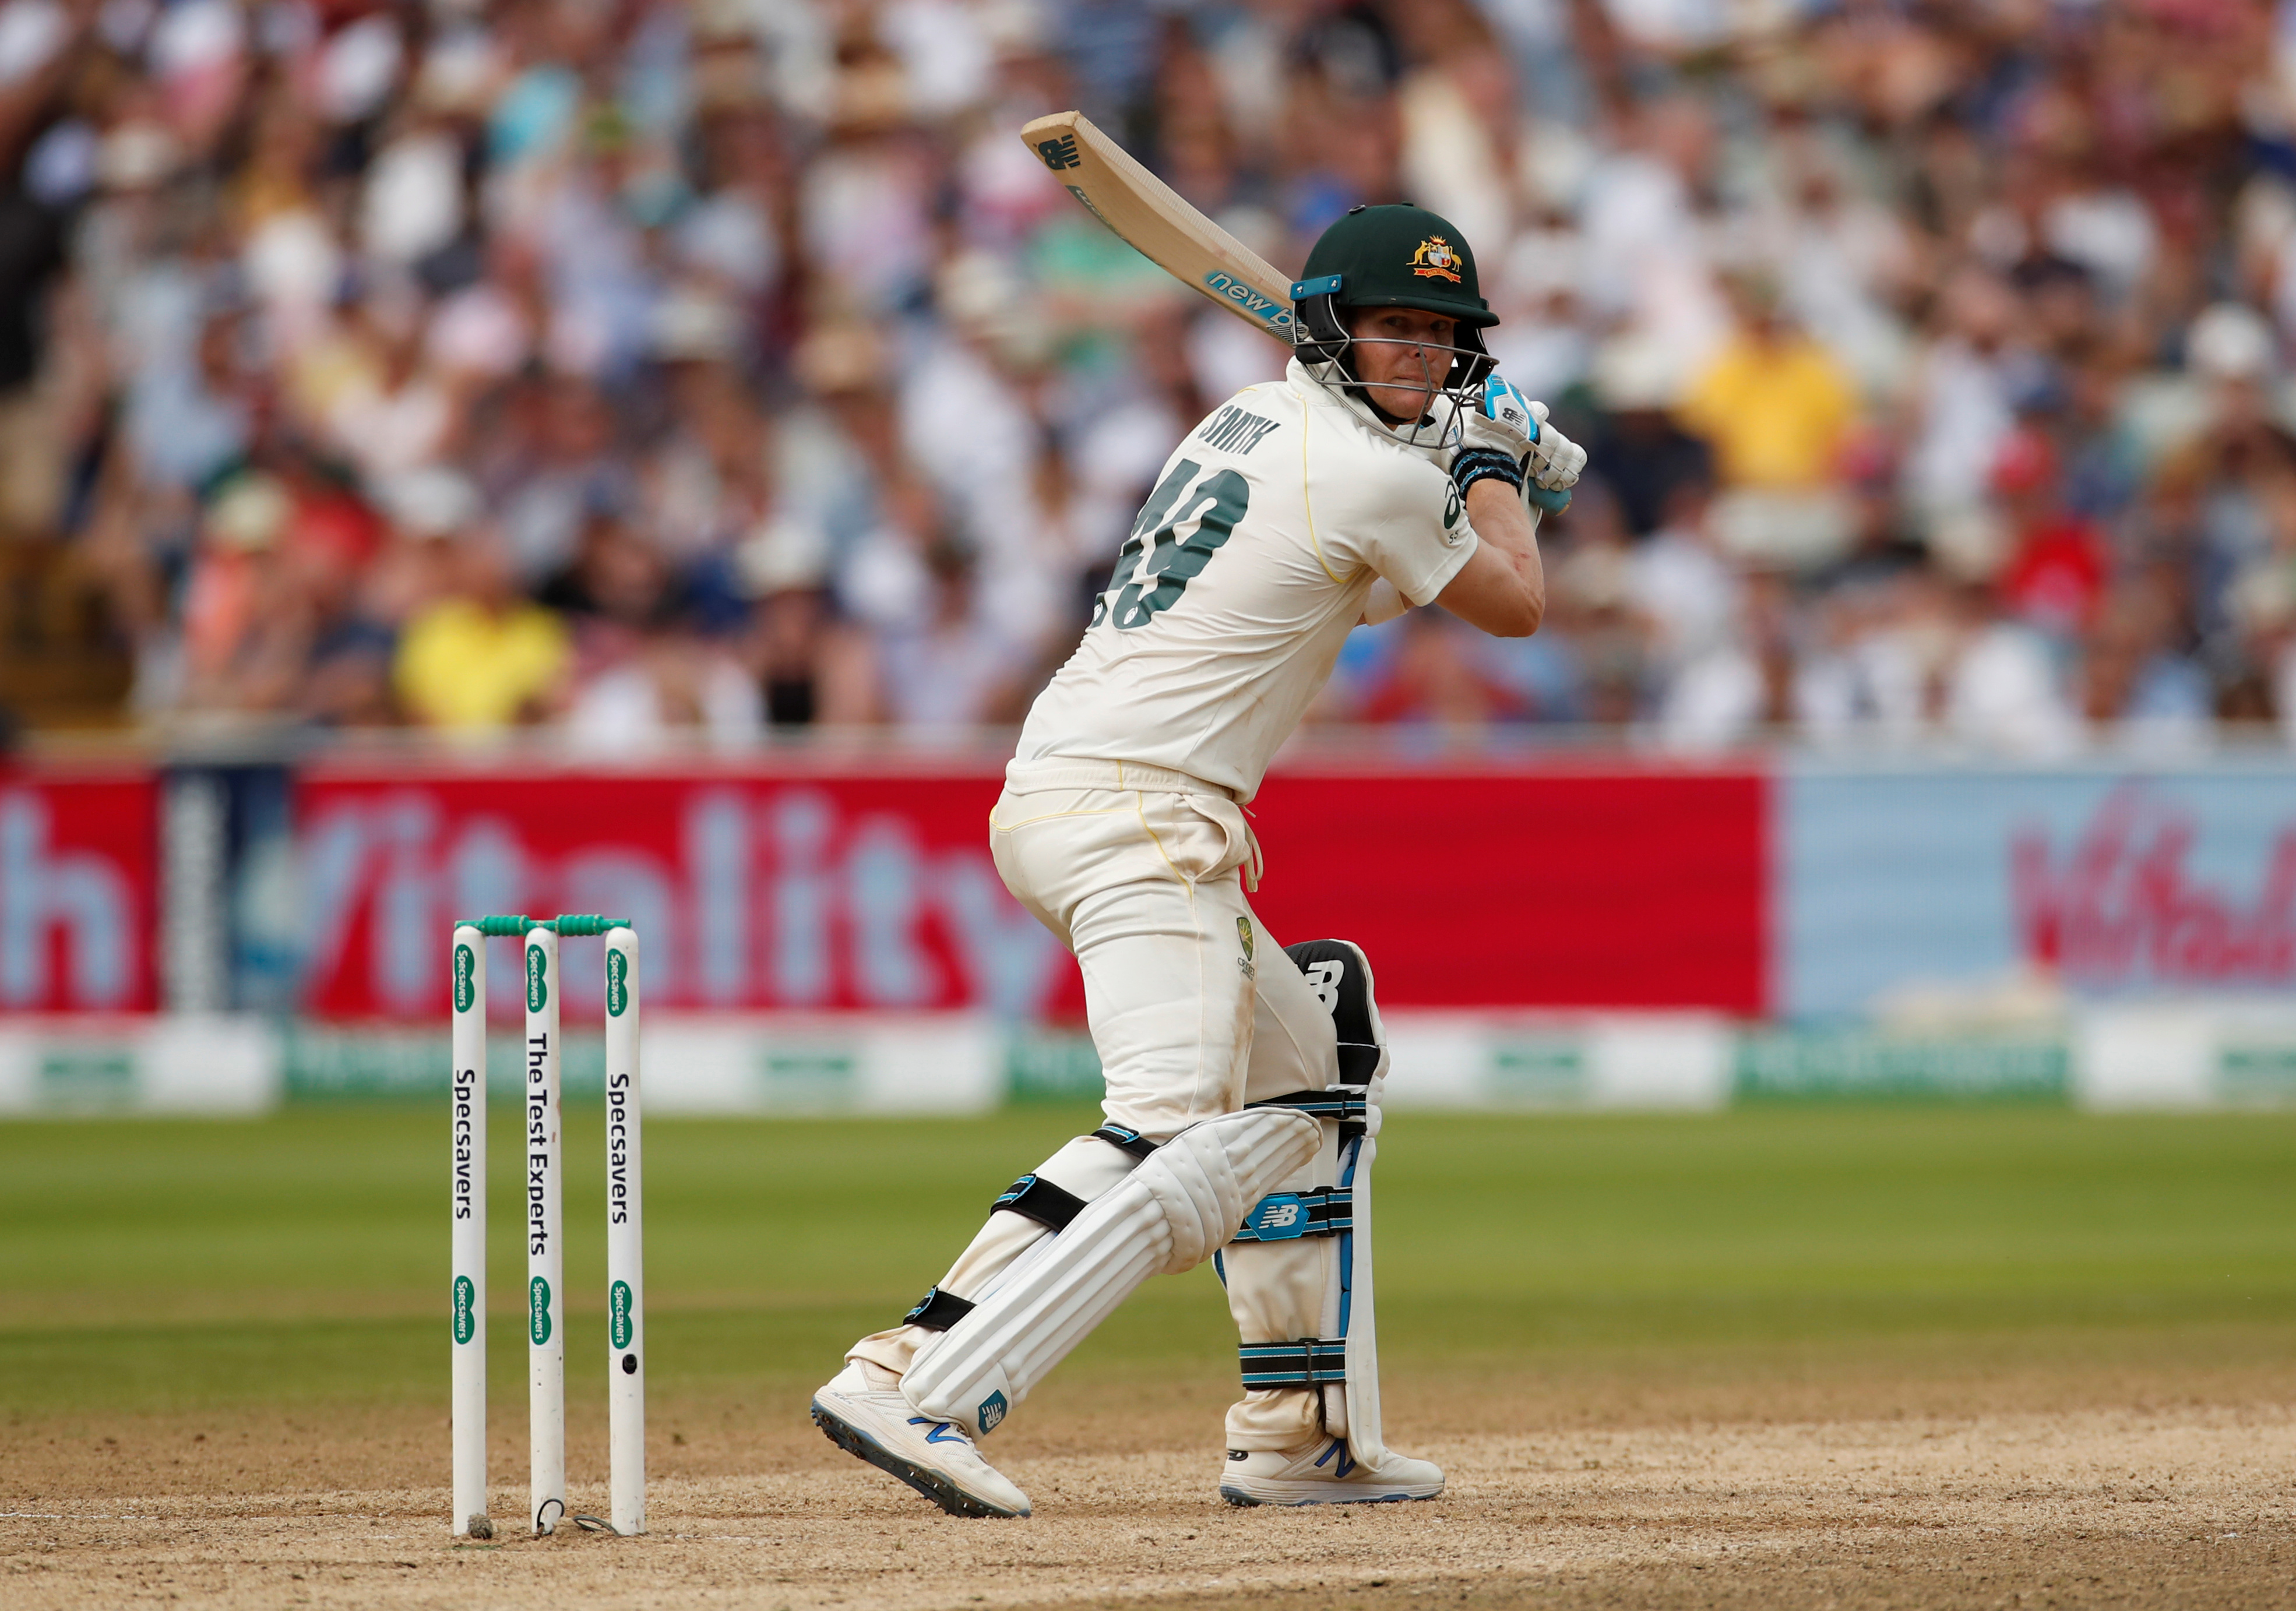 Cricket - Ashes 2019 - First Test - England v Australia - Edgbaston, Birmingham, Britain - August 4, 2019   Australia's Steve Smith reacts as he is caught out by England's Jonny Bairstow off the bowling of Chris Woakes    Action Images via Reuters/Andrew Boyers